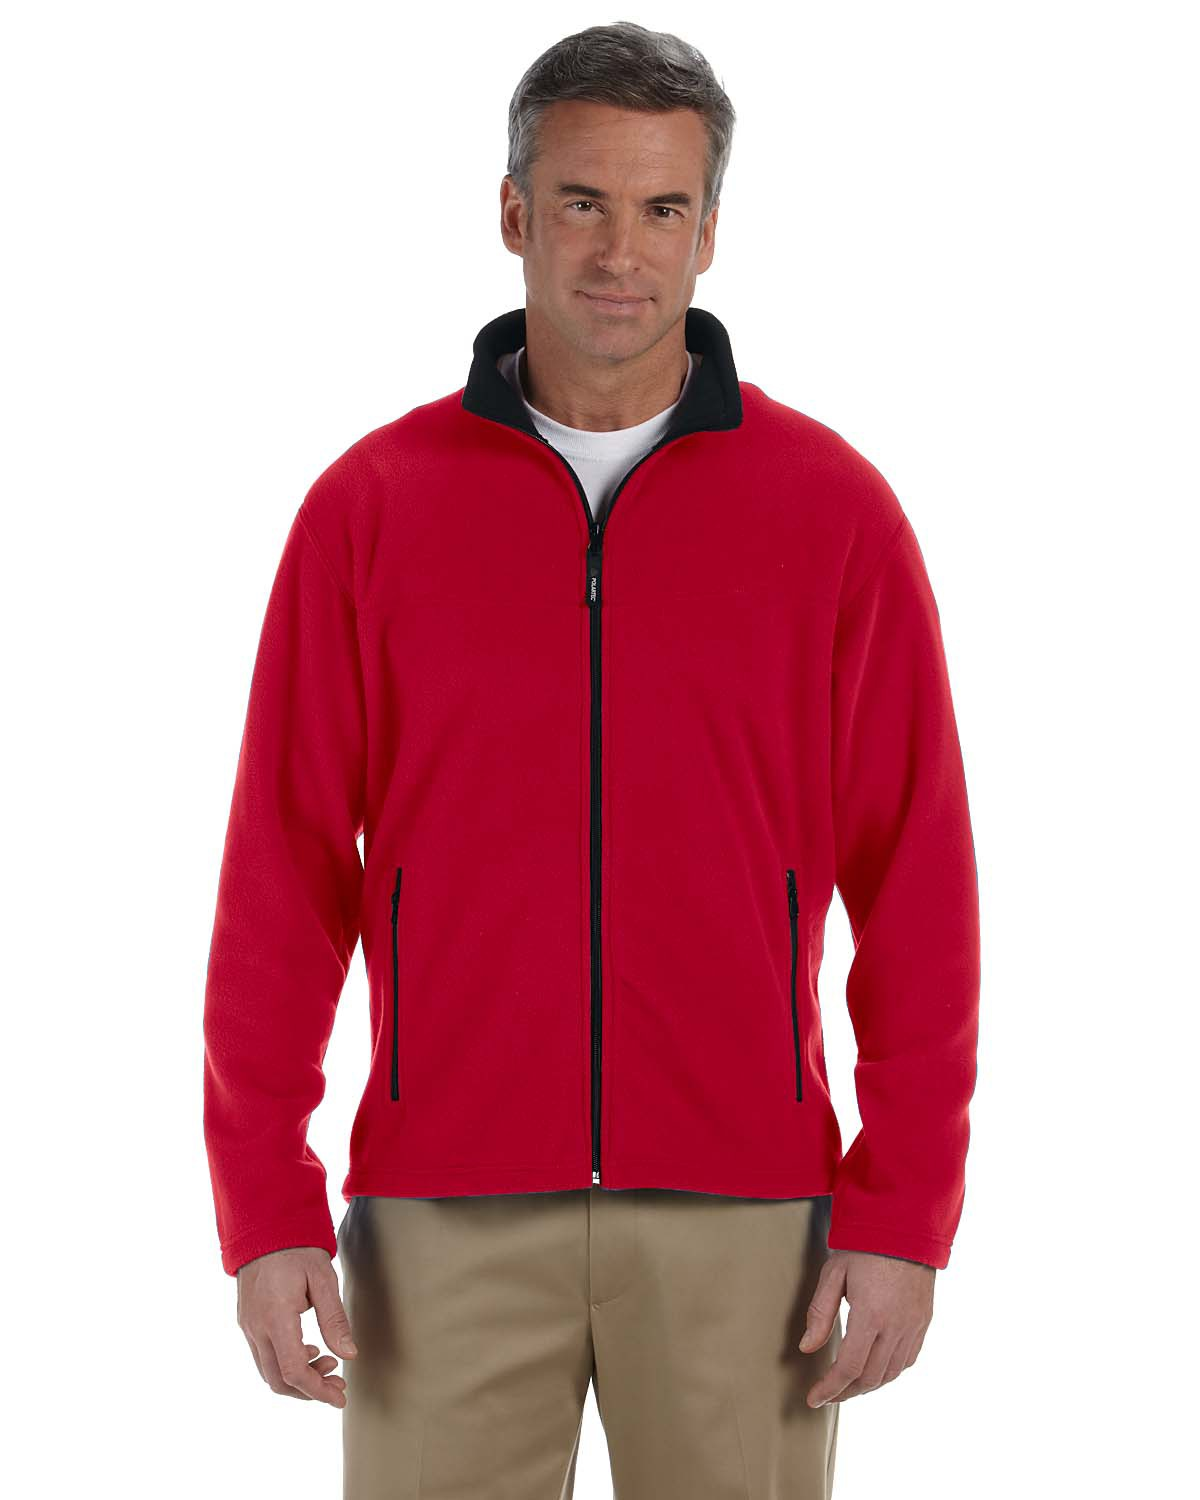 Chestnut Hill CH950  Polartec Full-Zip Jacket